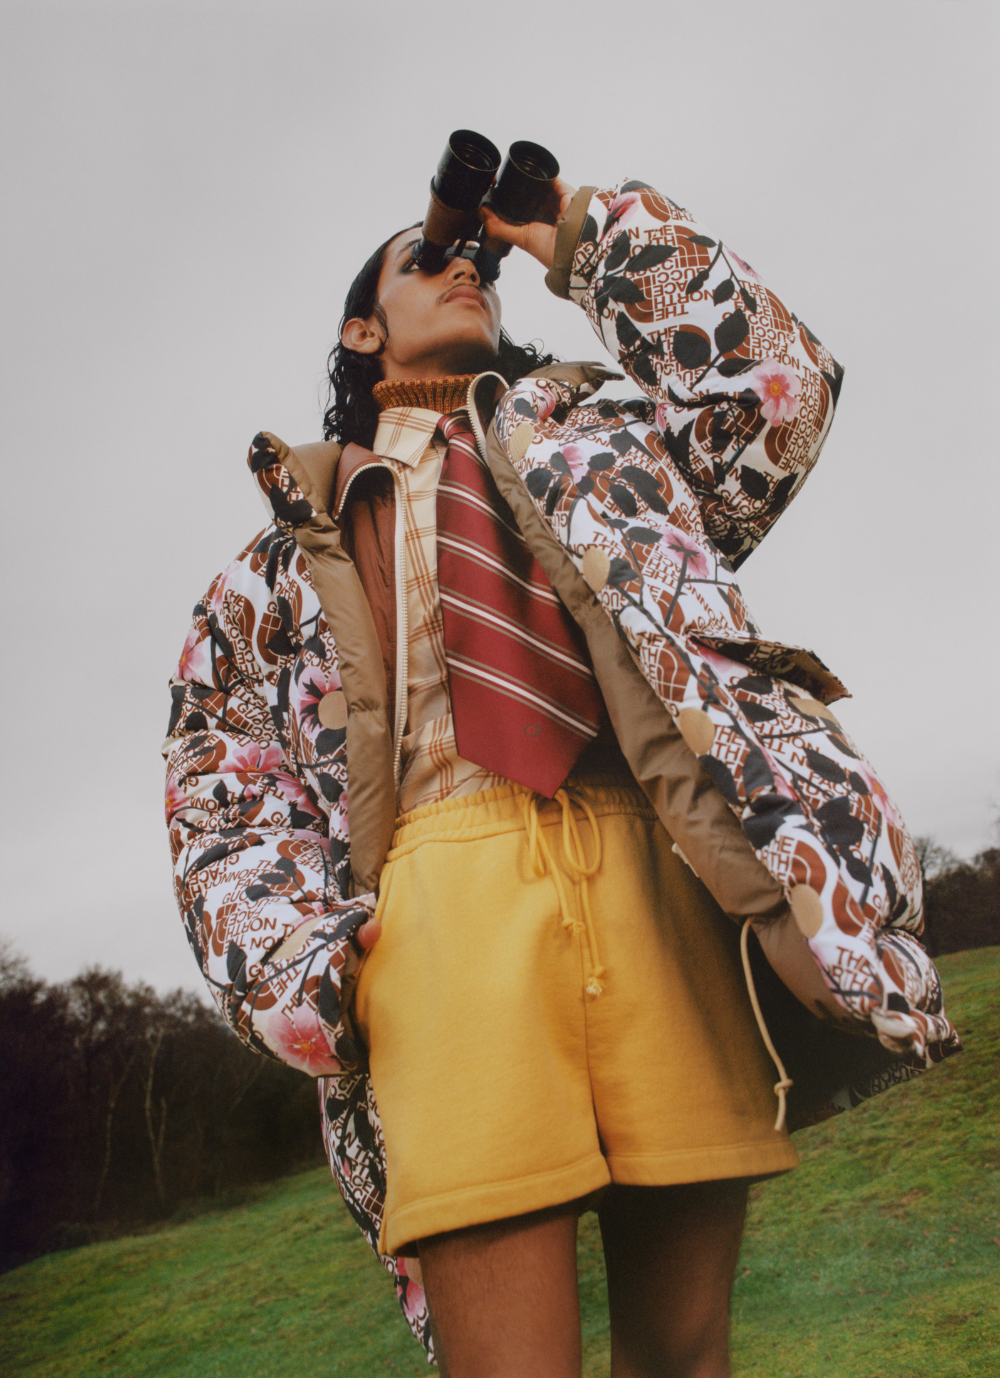 Birdwatching With Gucci The North Face And Flock Together In 2021 The North Face Women Lookbook Fashion Marketing [ 1378 x 1000 Pixel ]